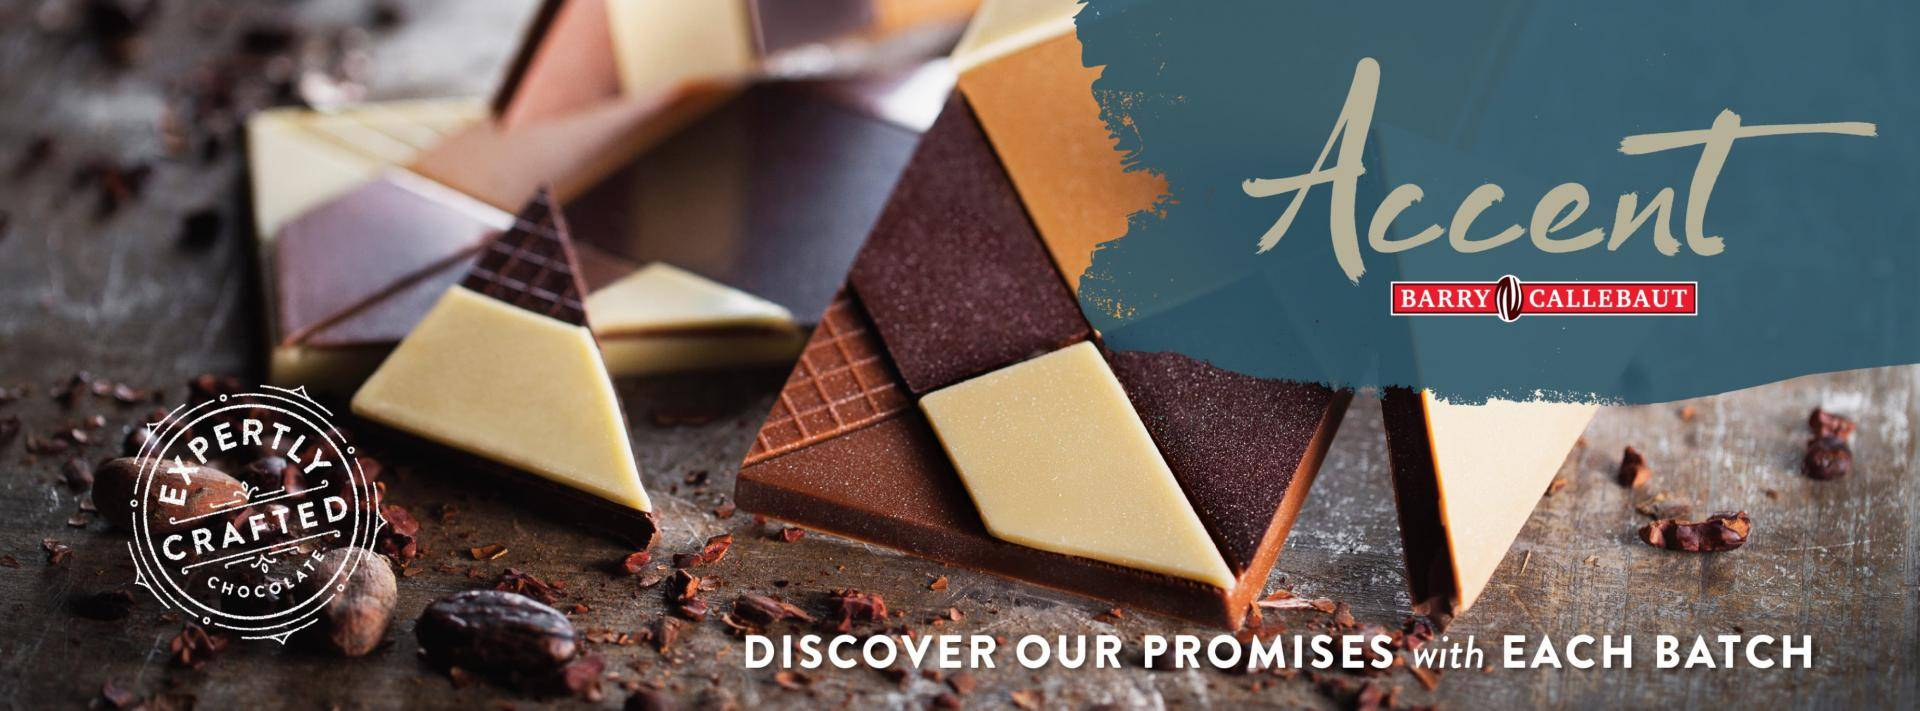 accent - new line of chocolate